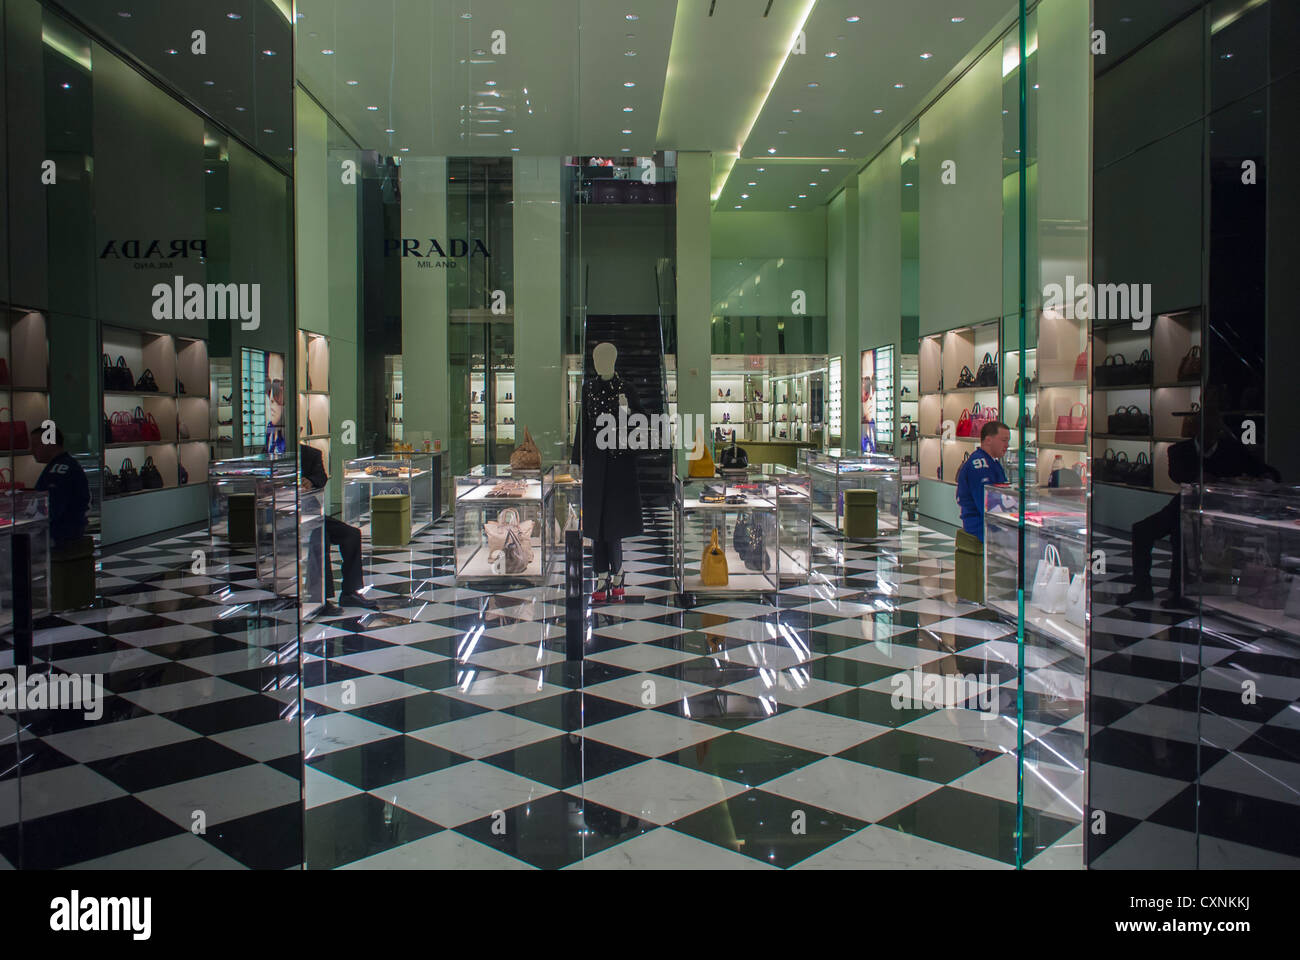 Capelli New York, Clothing Store Facade, Fifth Avenue, NYC Stock Photo